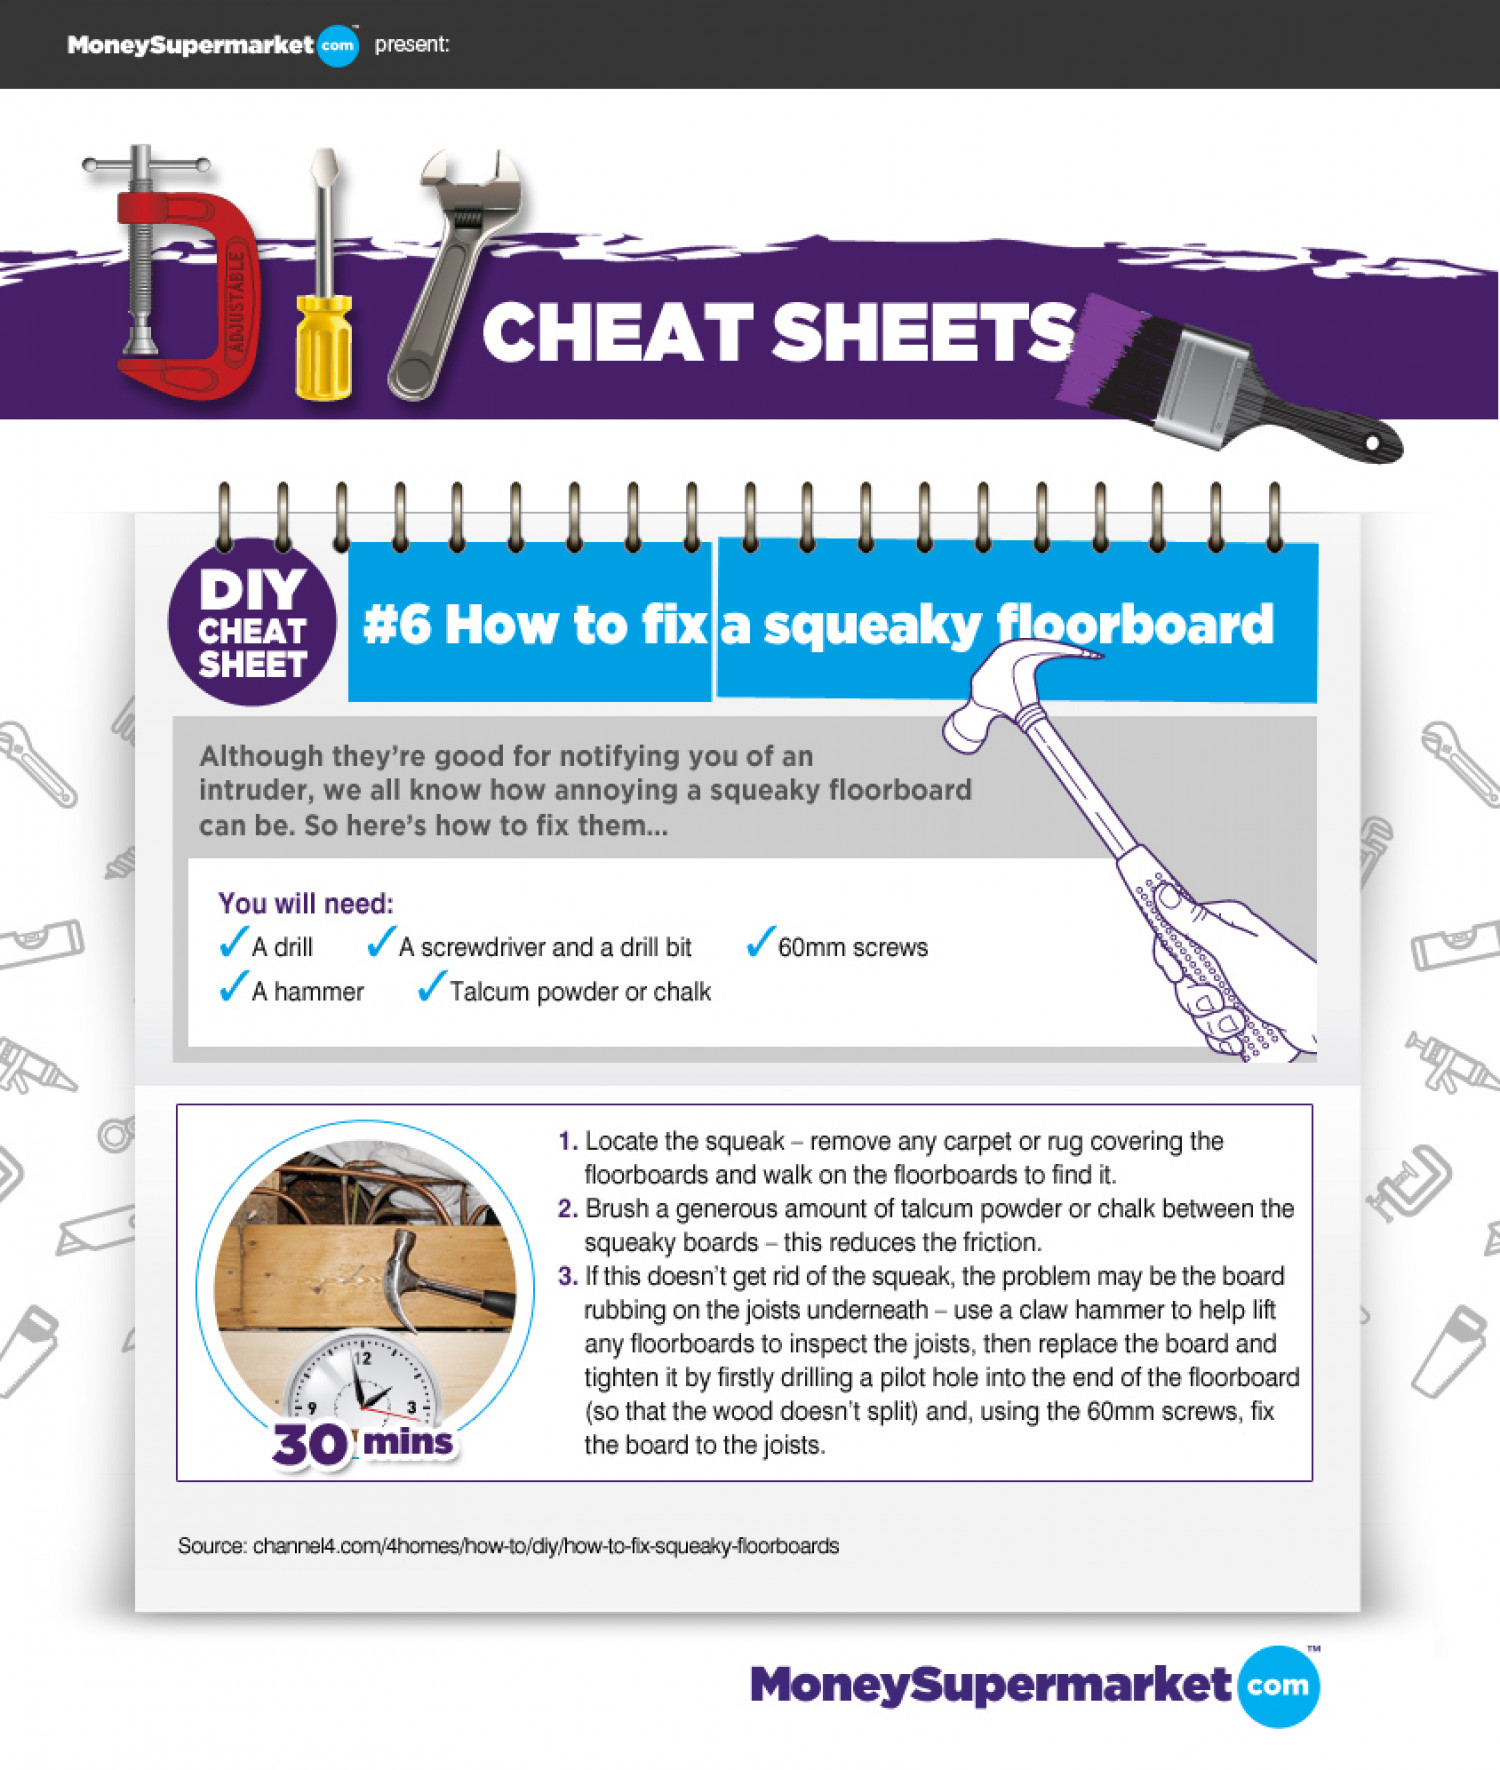 DIY Cheat Sheet - How to Fix a Squeaky Floorboard Infographic